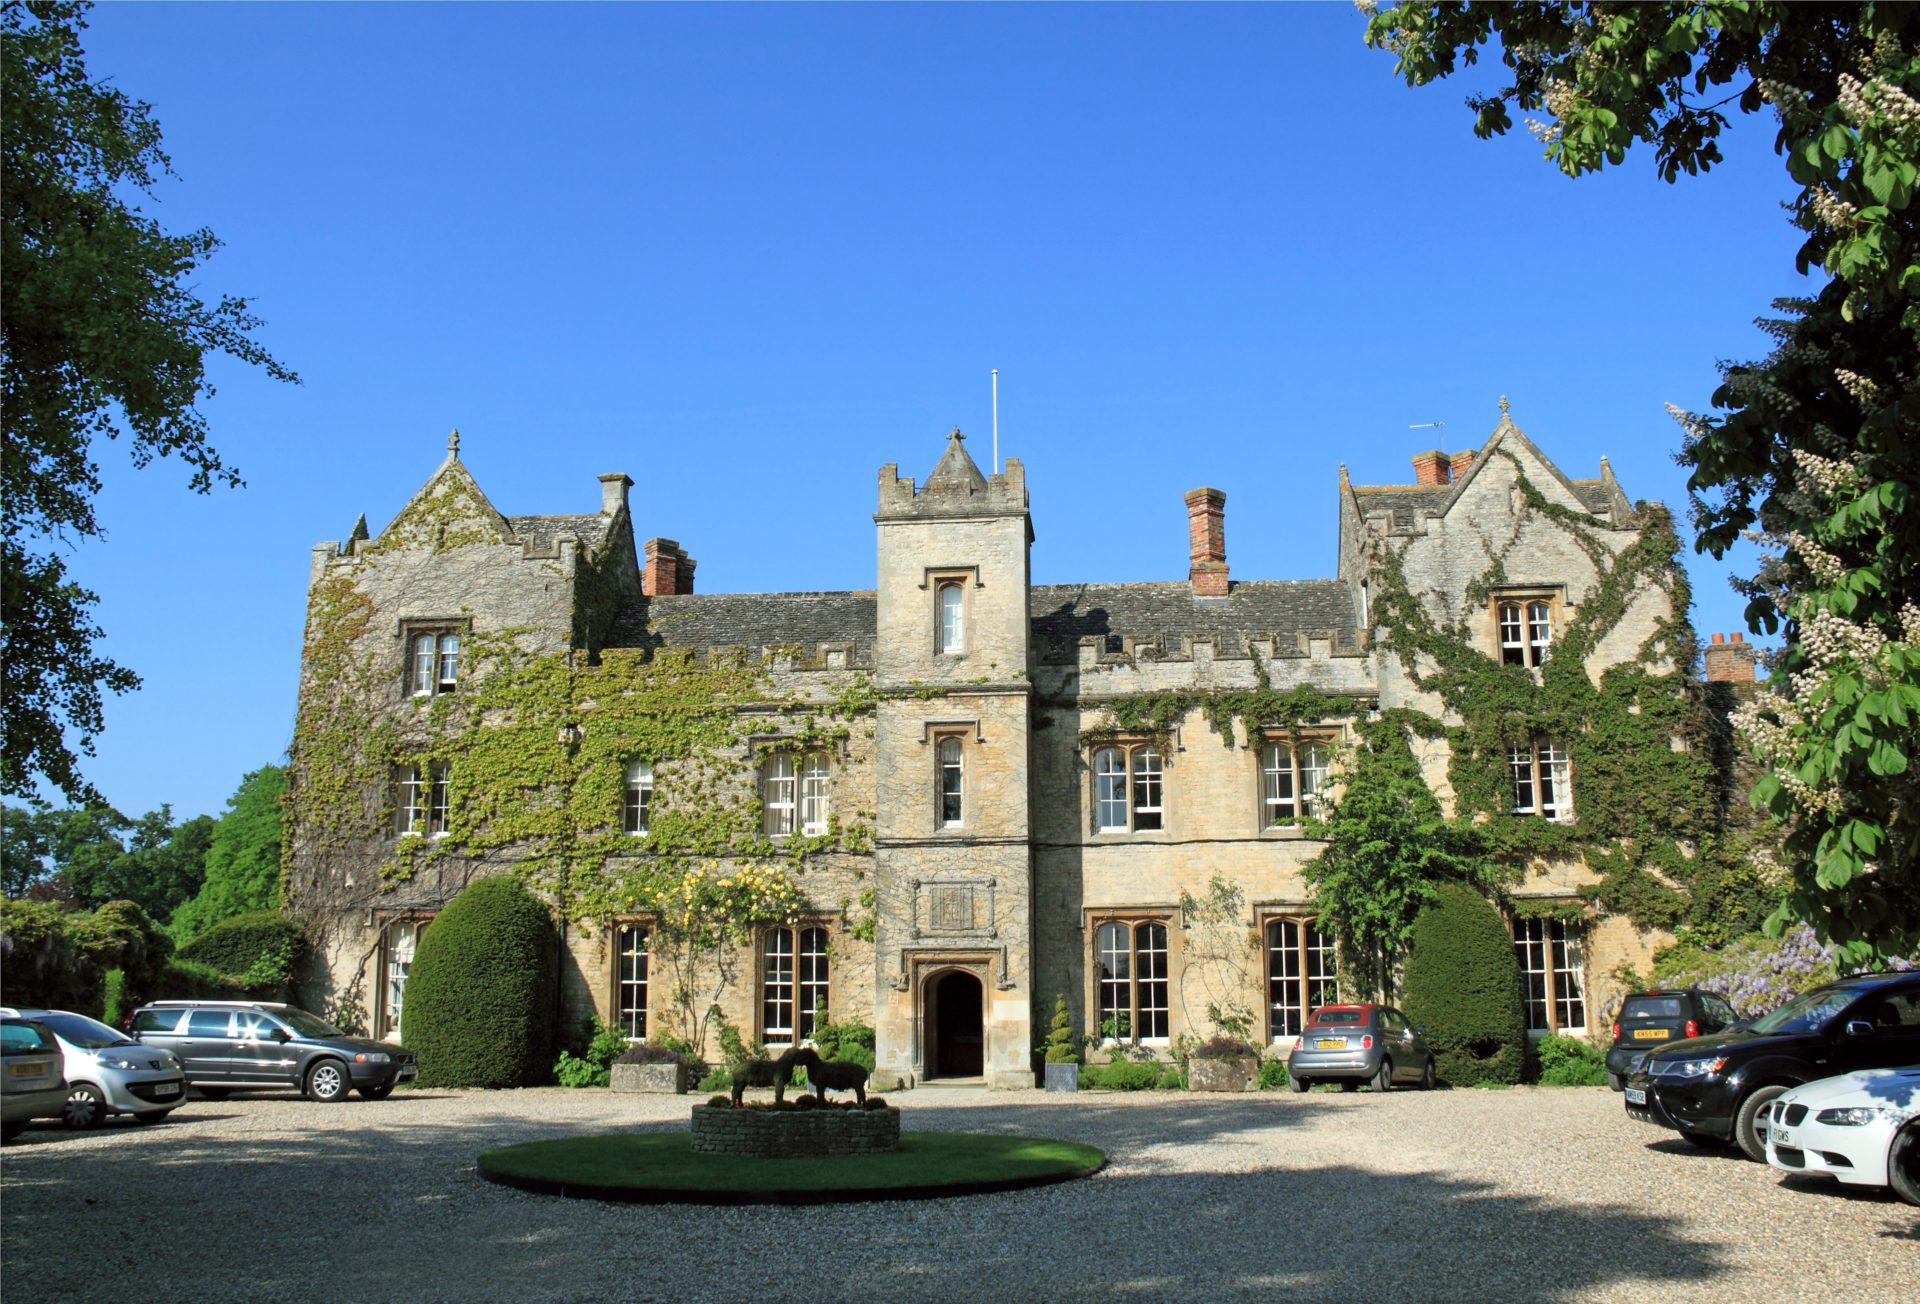 Front entrance at The Manor, 16thC hotel, Weston-on-the-Green, Oxfordshire, England, Great Britain, United Kingdom, UK, Europe